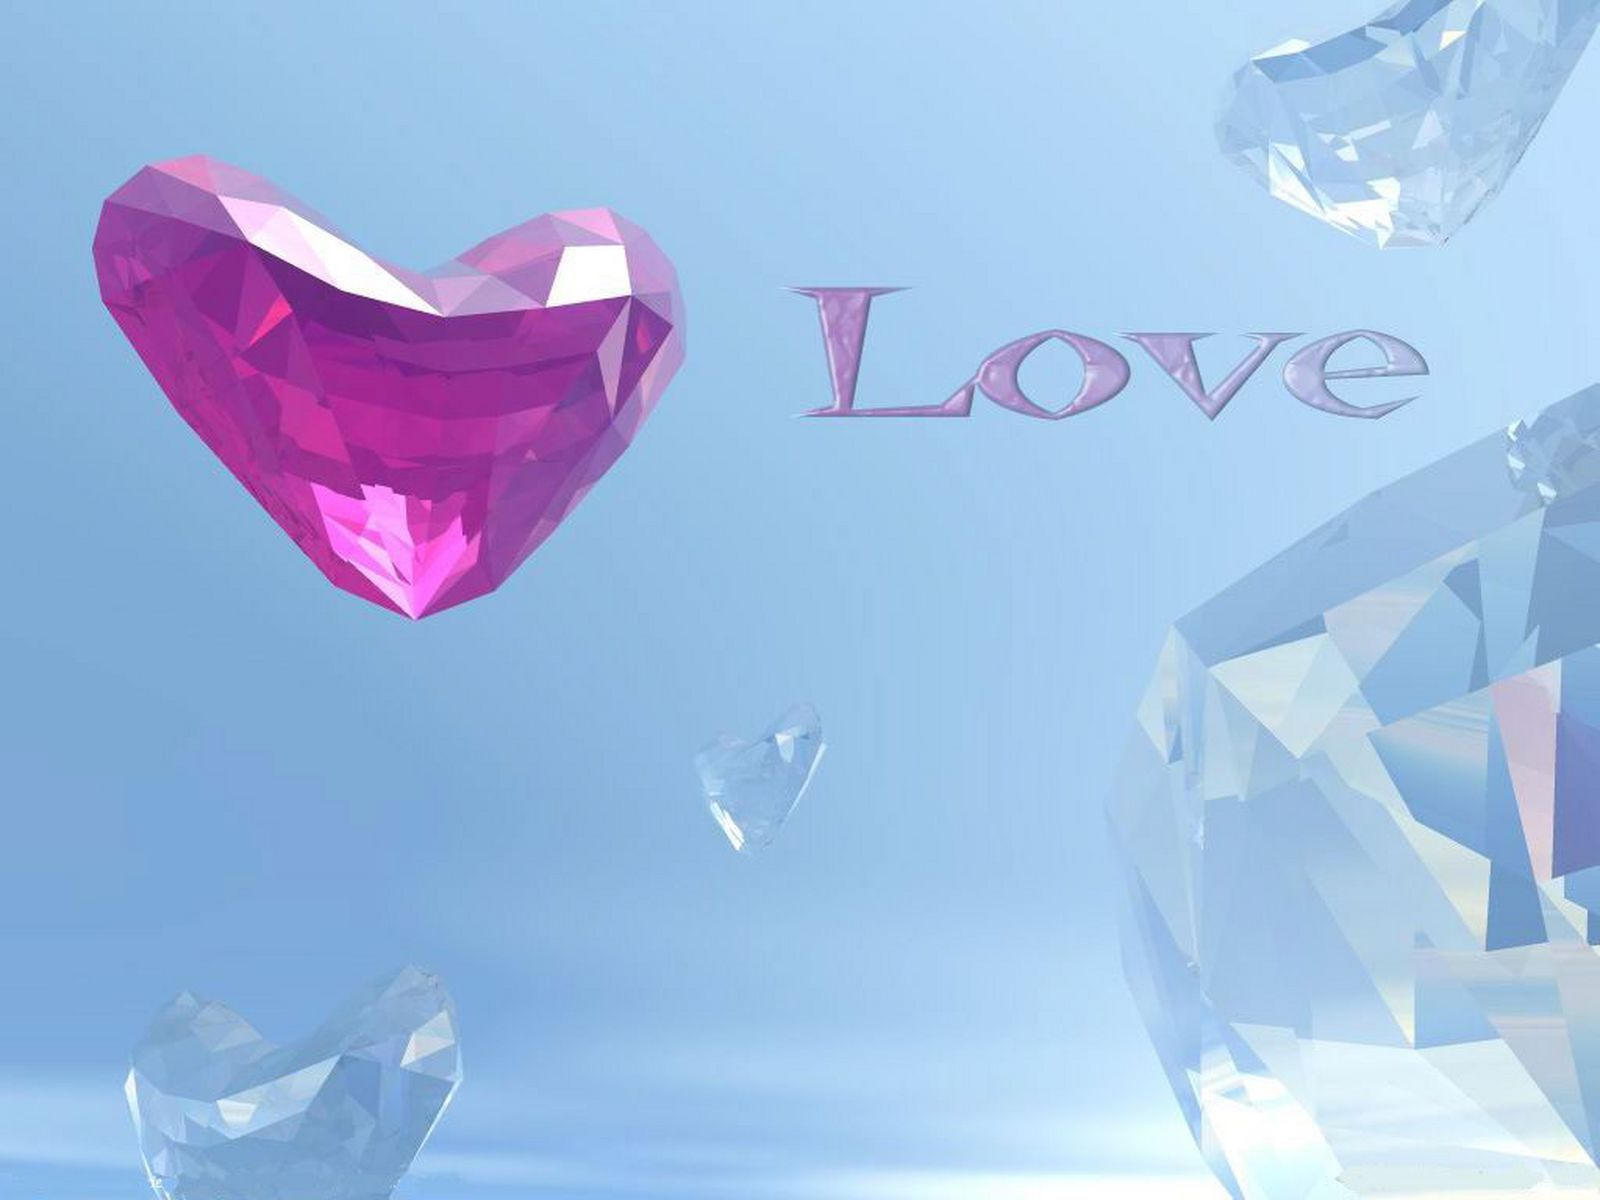 Love wallpaper love 2939260 1600 1200